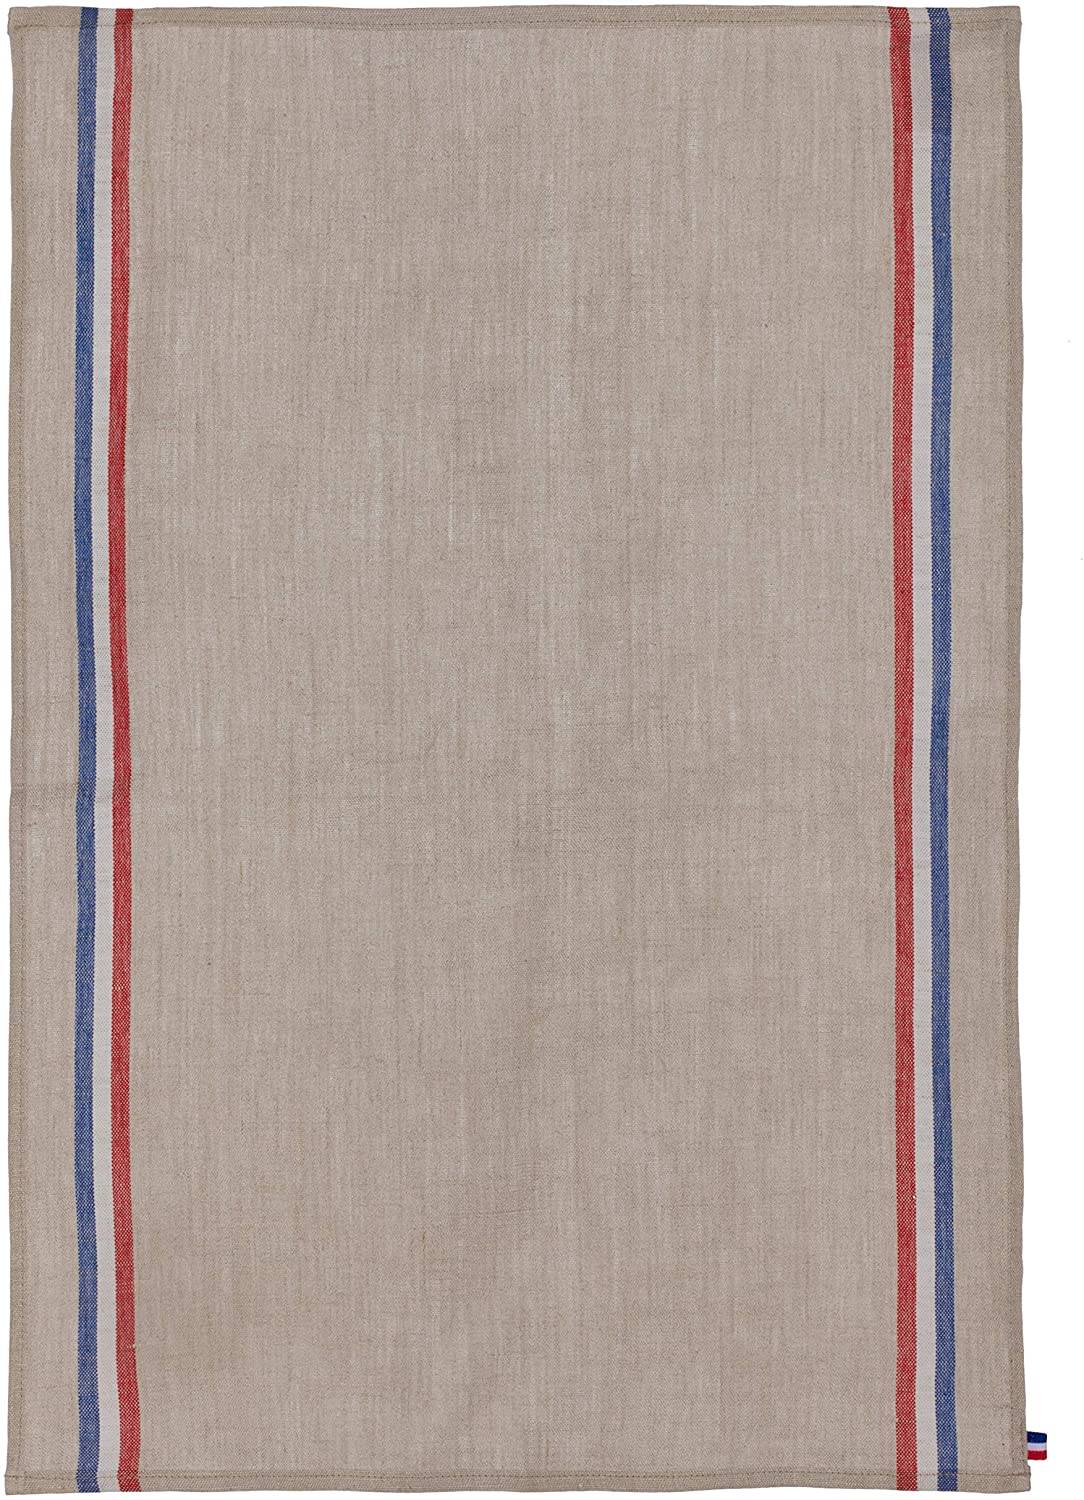 Coucke French 100% Linen Towel, Tricolore Naturel, 20 by 30 Inches, Beige, Red and Blue